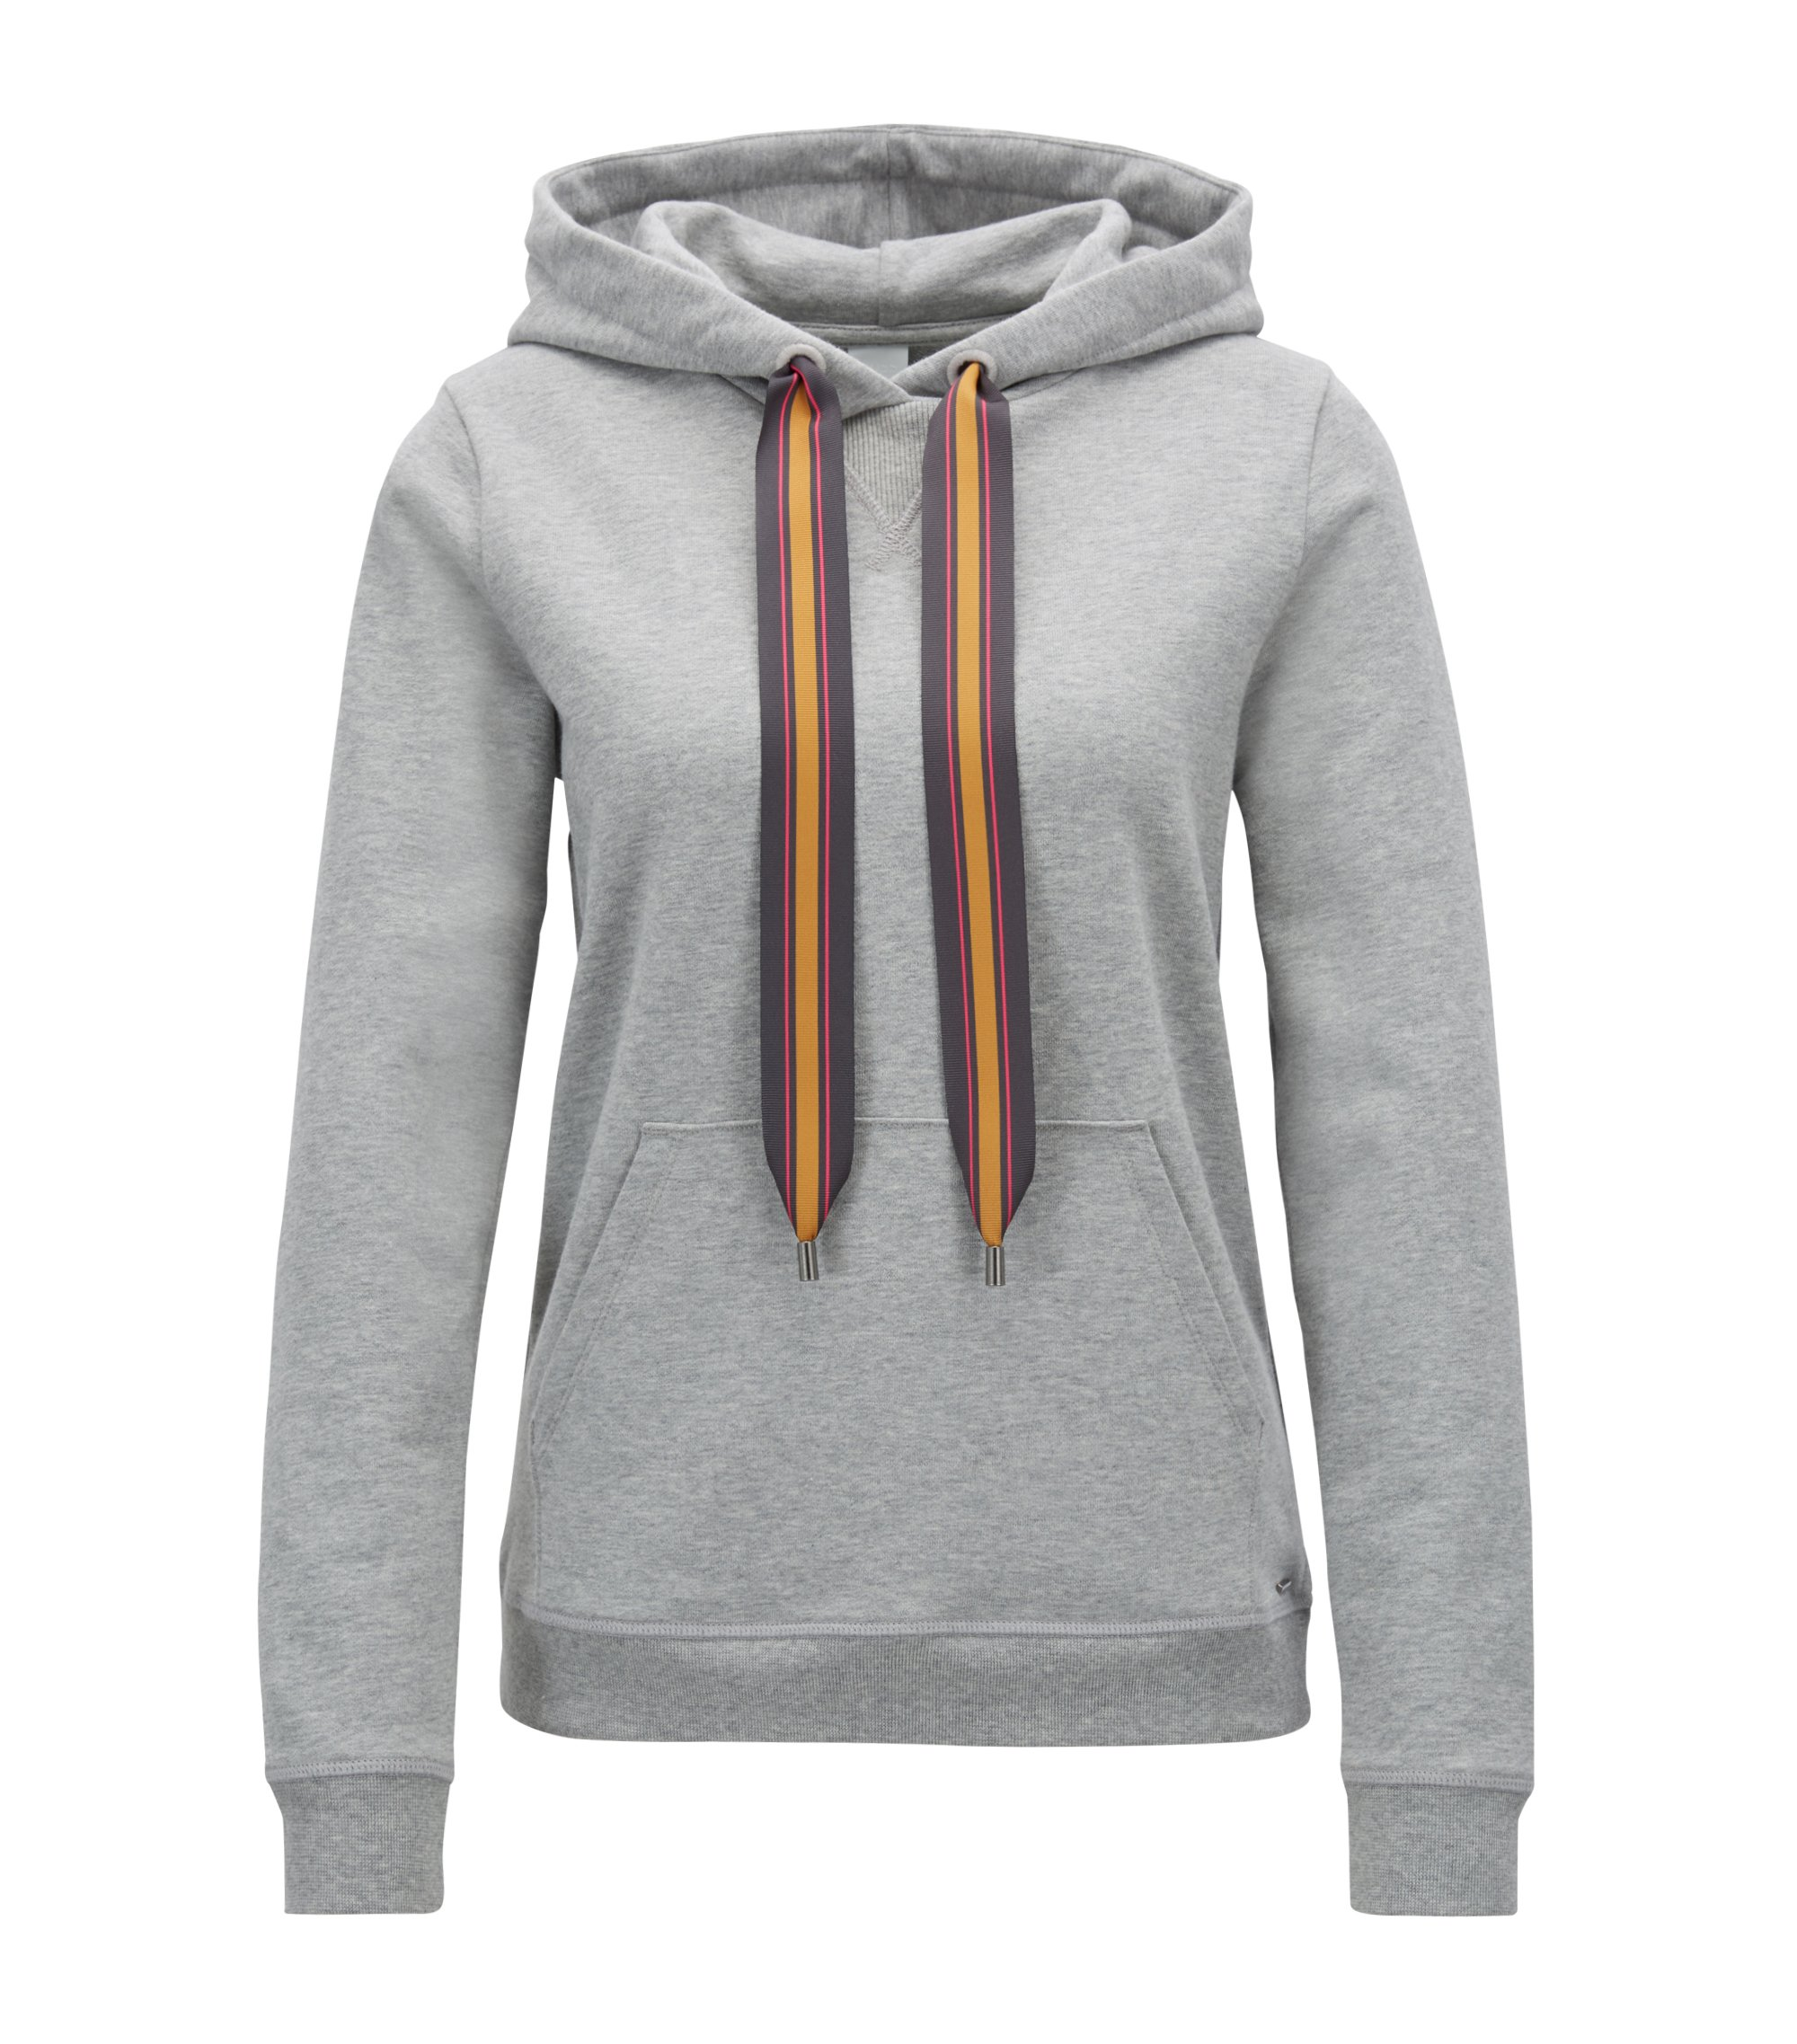 Hooded sweatshirt in French terry with printed drawstring tape, Silver